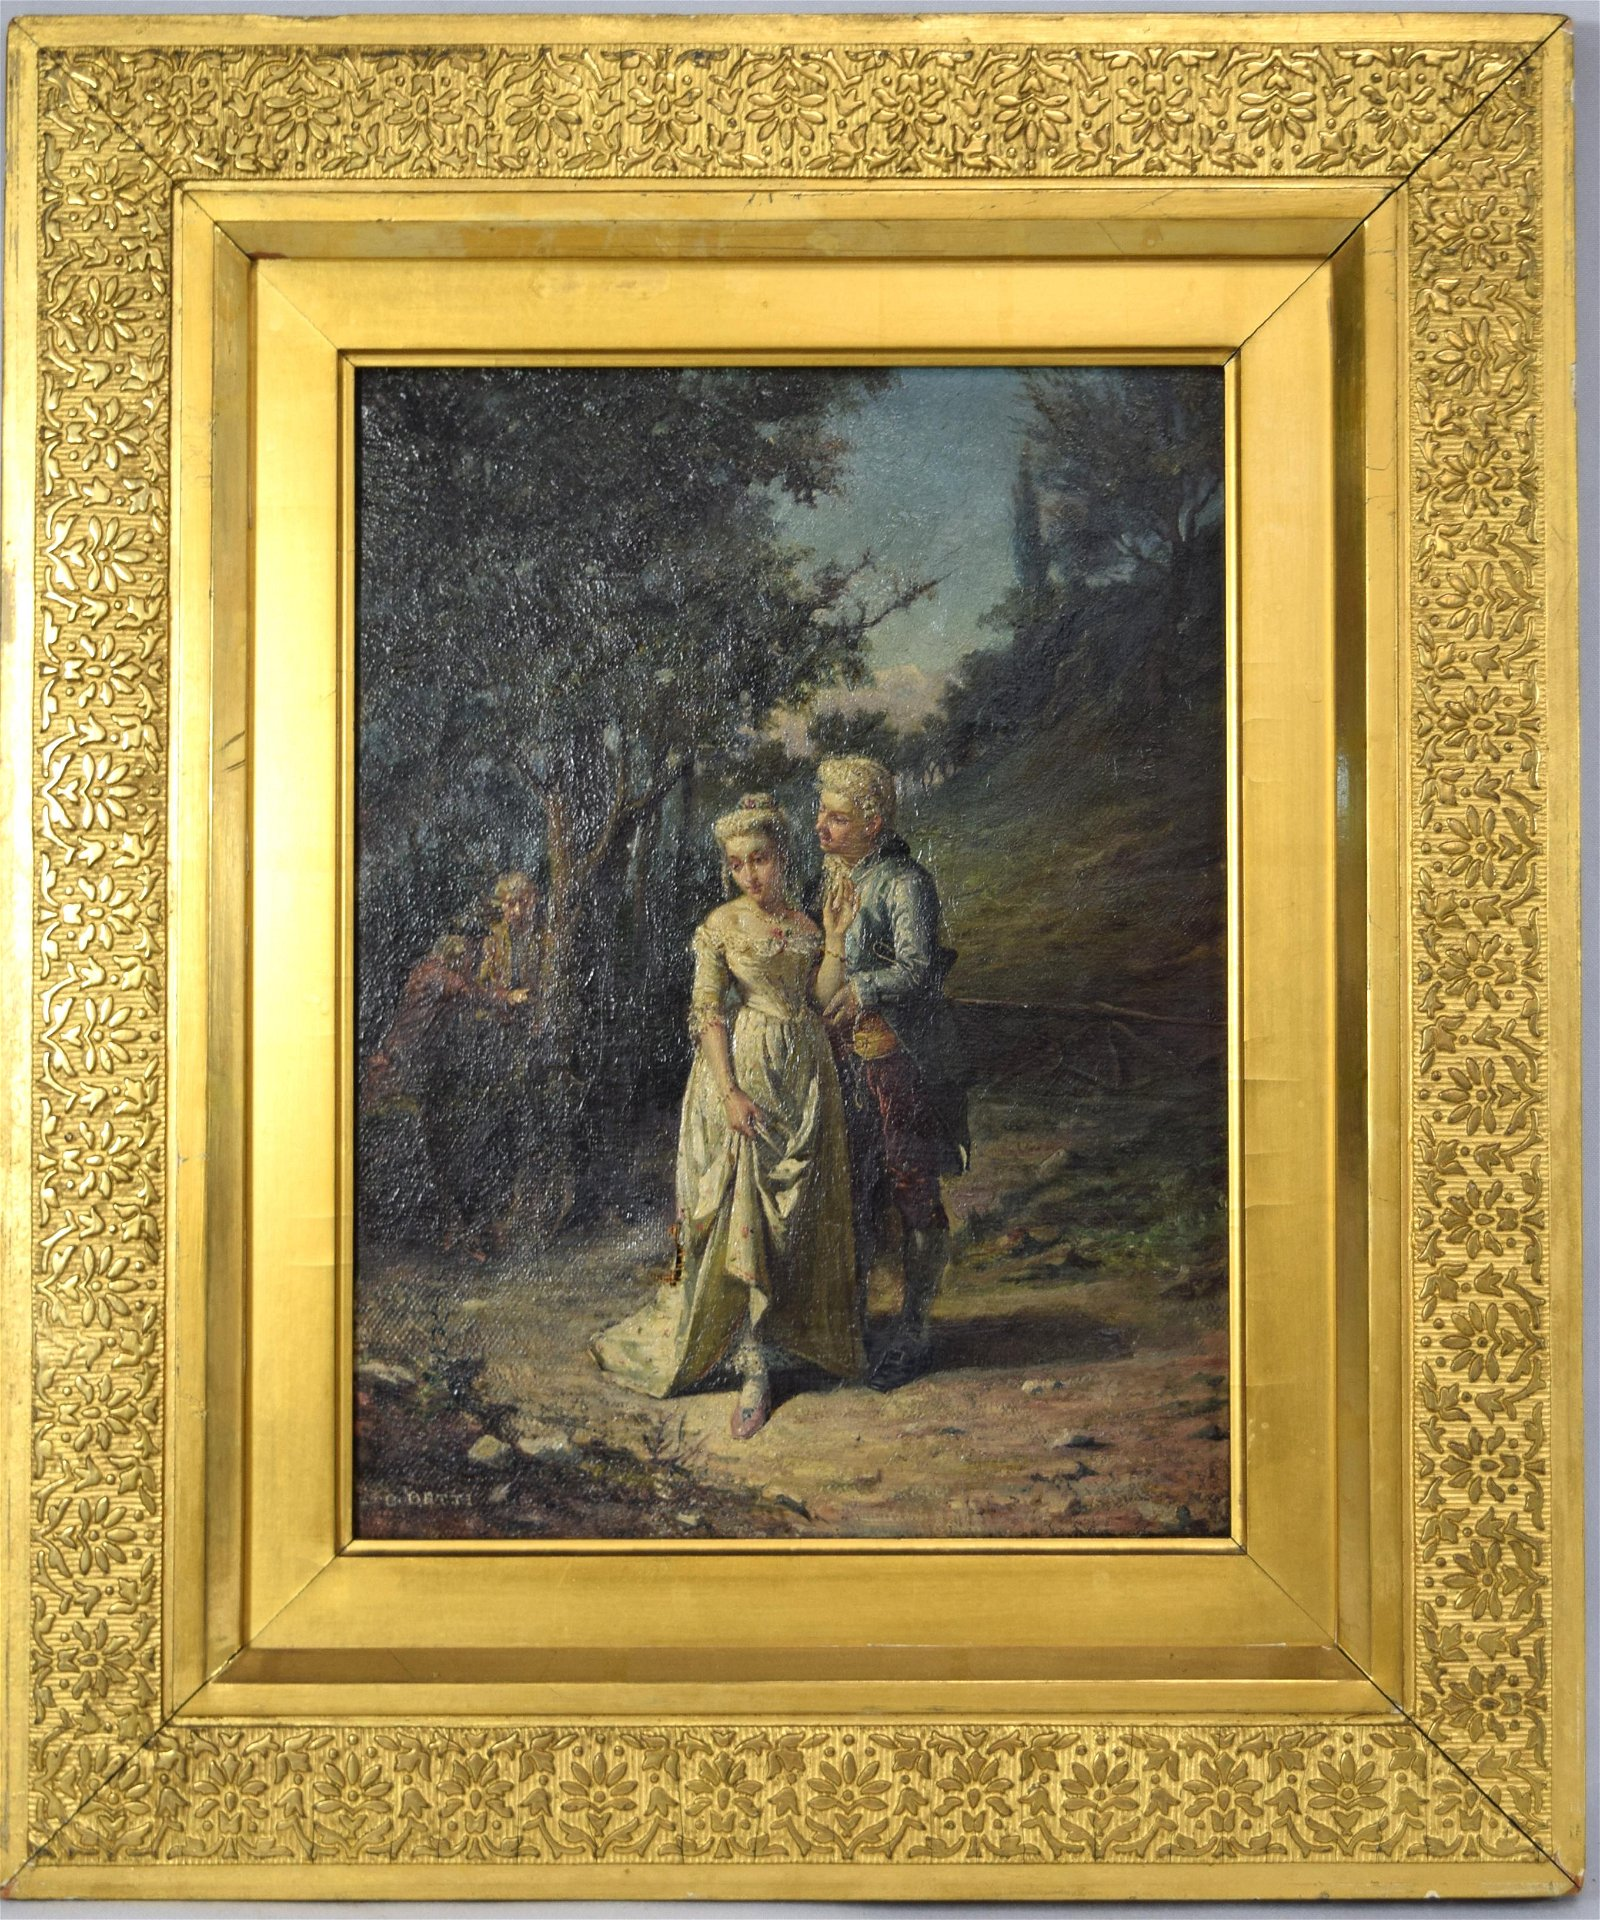 C. DETTI OIL ON CANVAS LANDSCAPE WITH FIGURES: